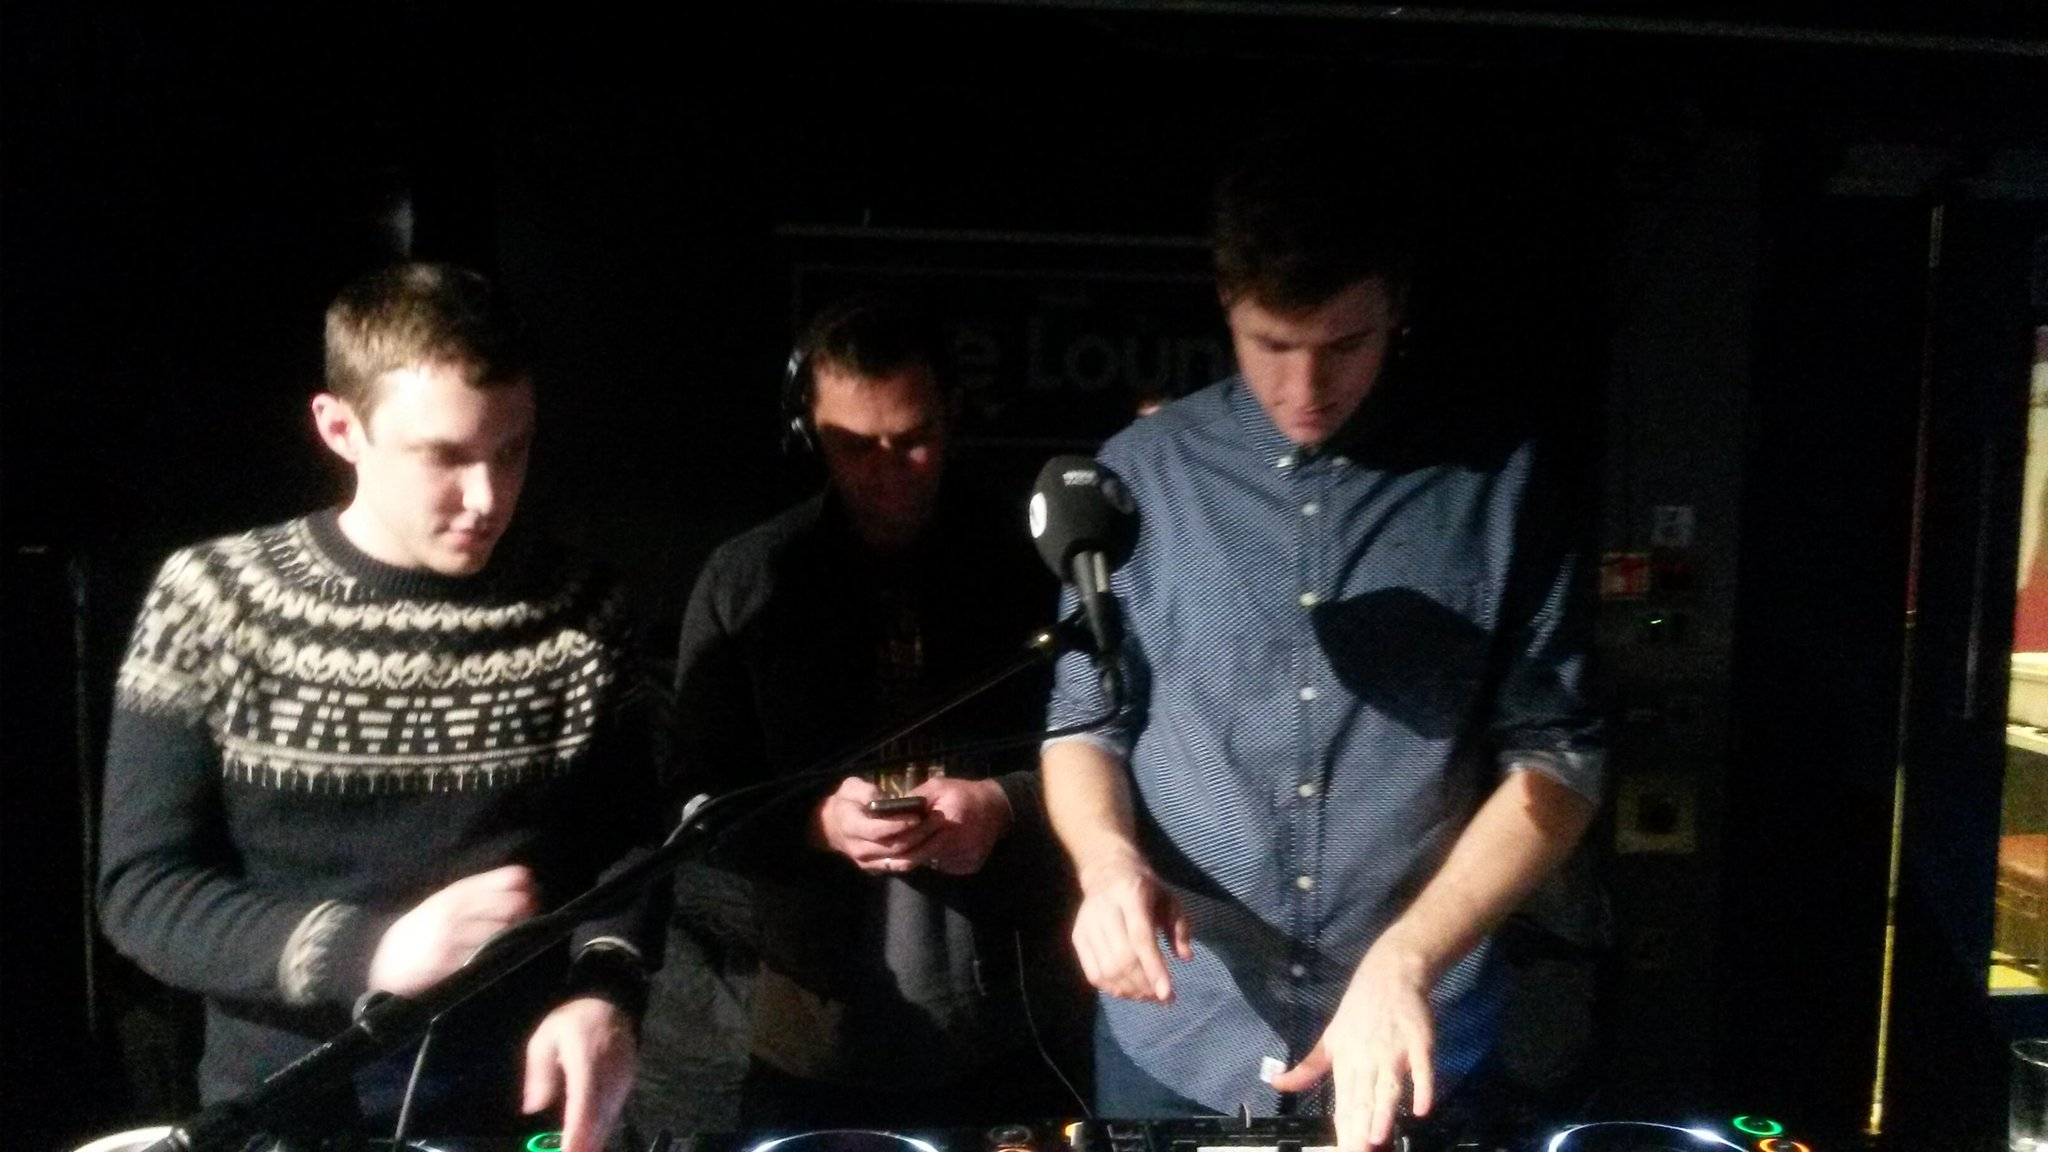 RT @philytaggart: Bedroom DJ Party with @gregjames @scott_mills and @chris_stark http://t.co/a6HZOf0YGP